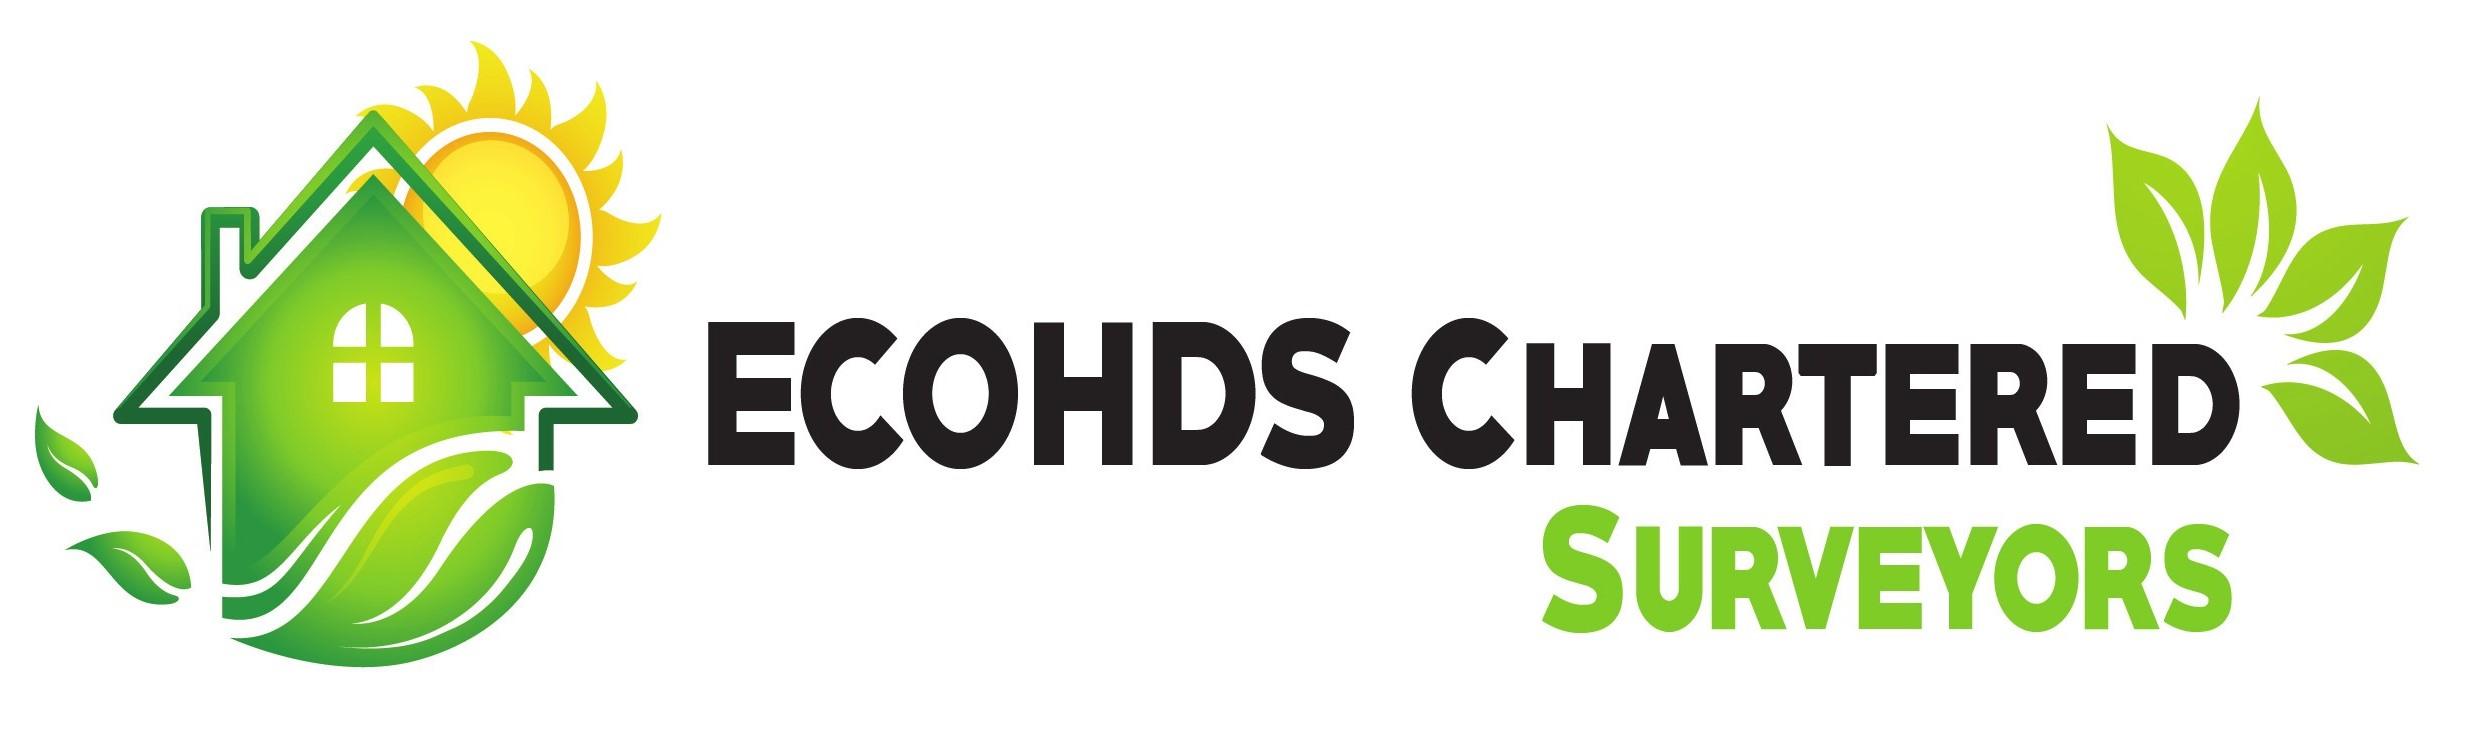 ECOHDS-Chartered-Surveyors